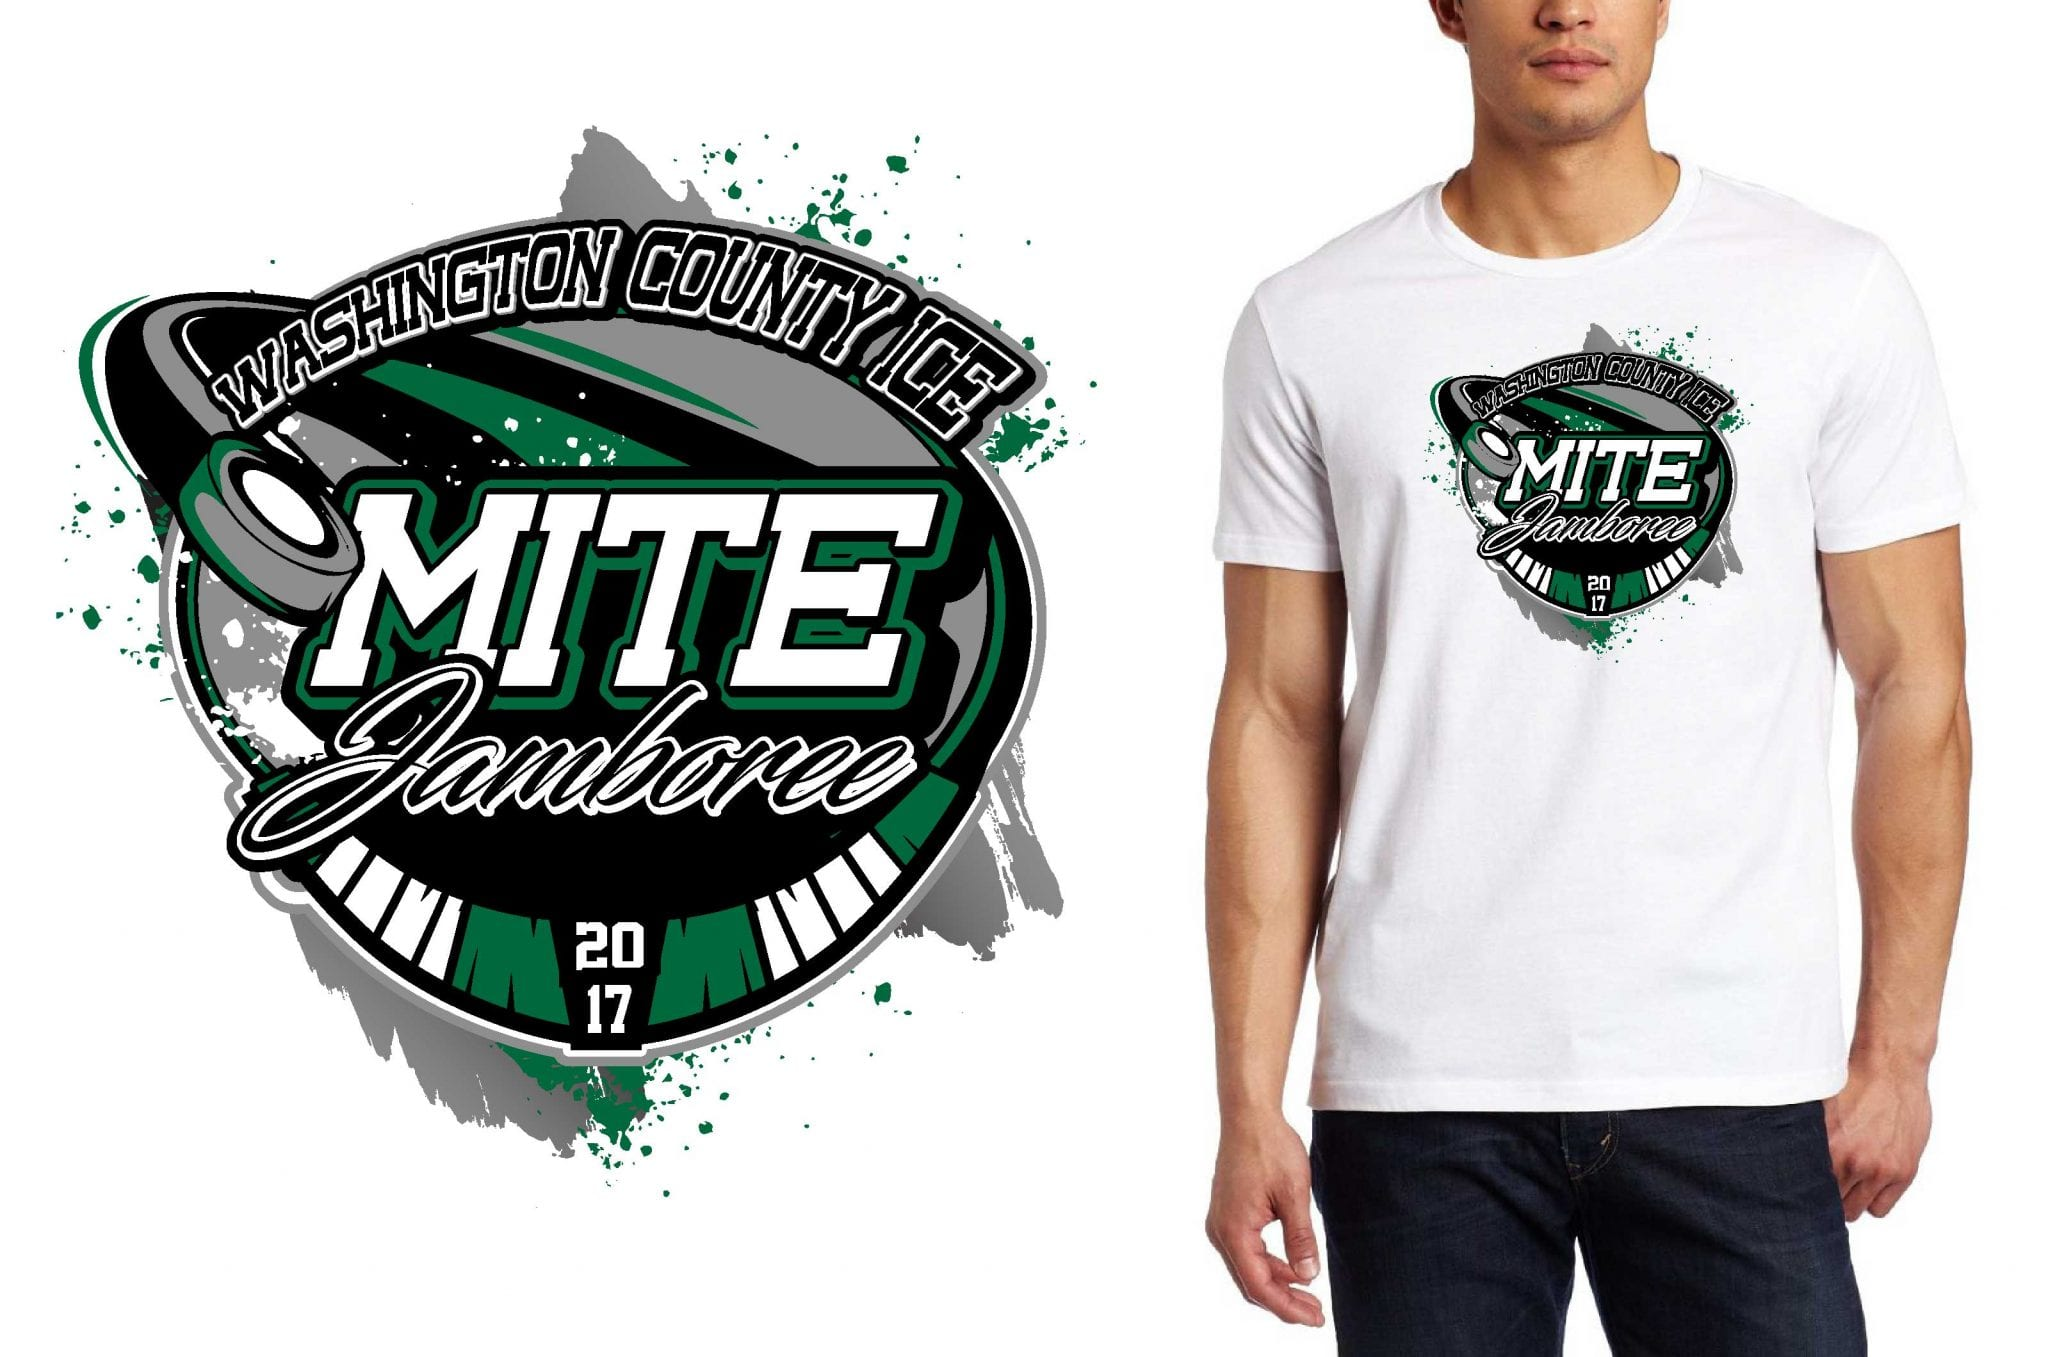 VECTOR LOGO DESIGN FOR 1.28-29.WASHINGTON COUNTY ICE MITE JAMBOREE.eric. hockey-event